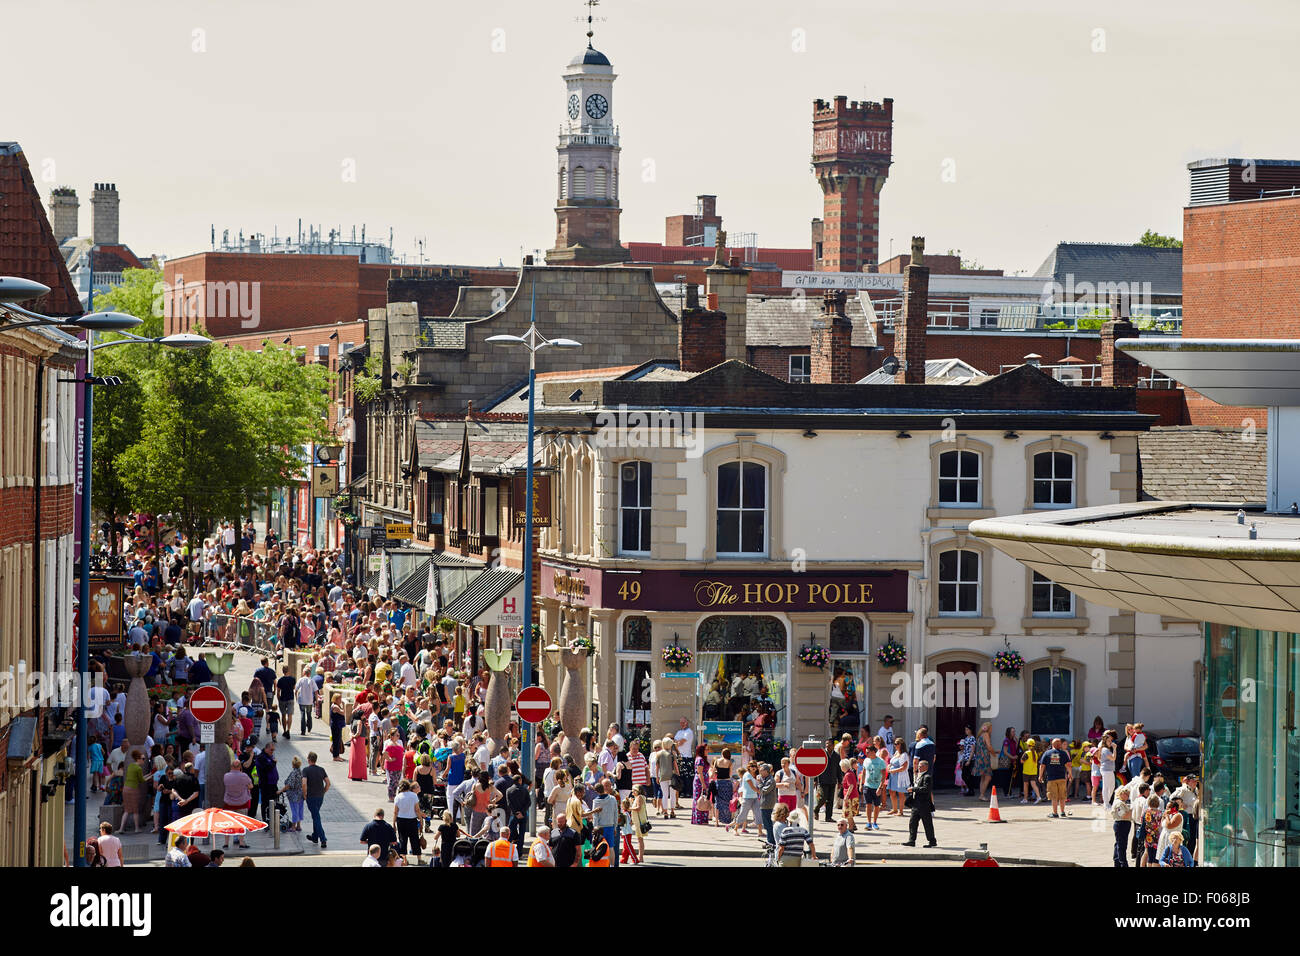 Warrington town centre in Cheshire, 49 Horsemarket street Hop Pole Restaurant   People crowds many crowded community - Stock Image